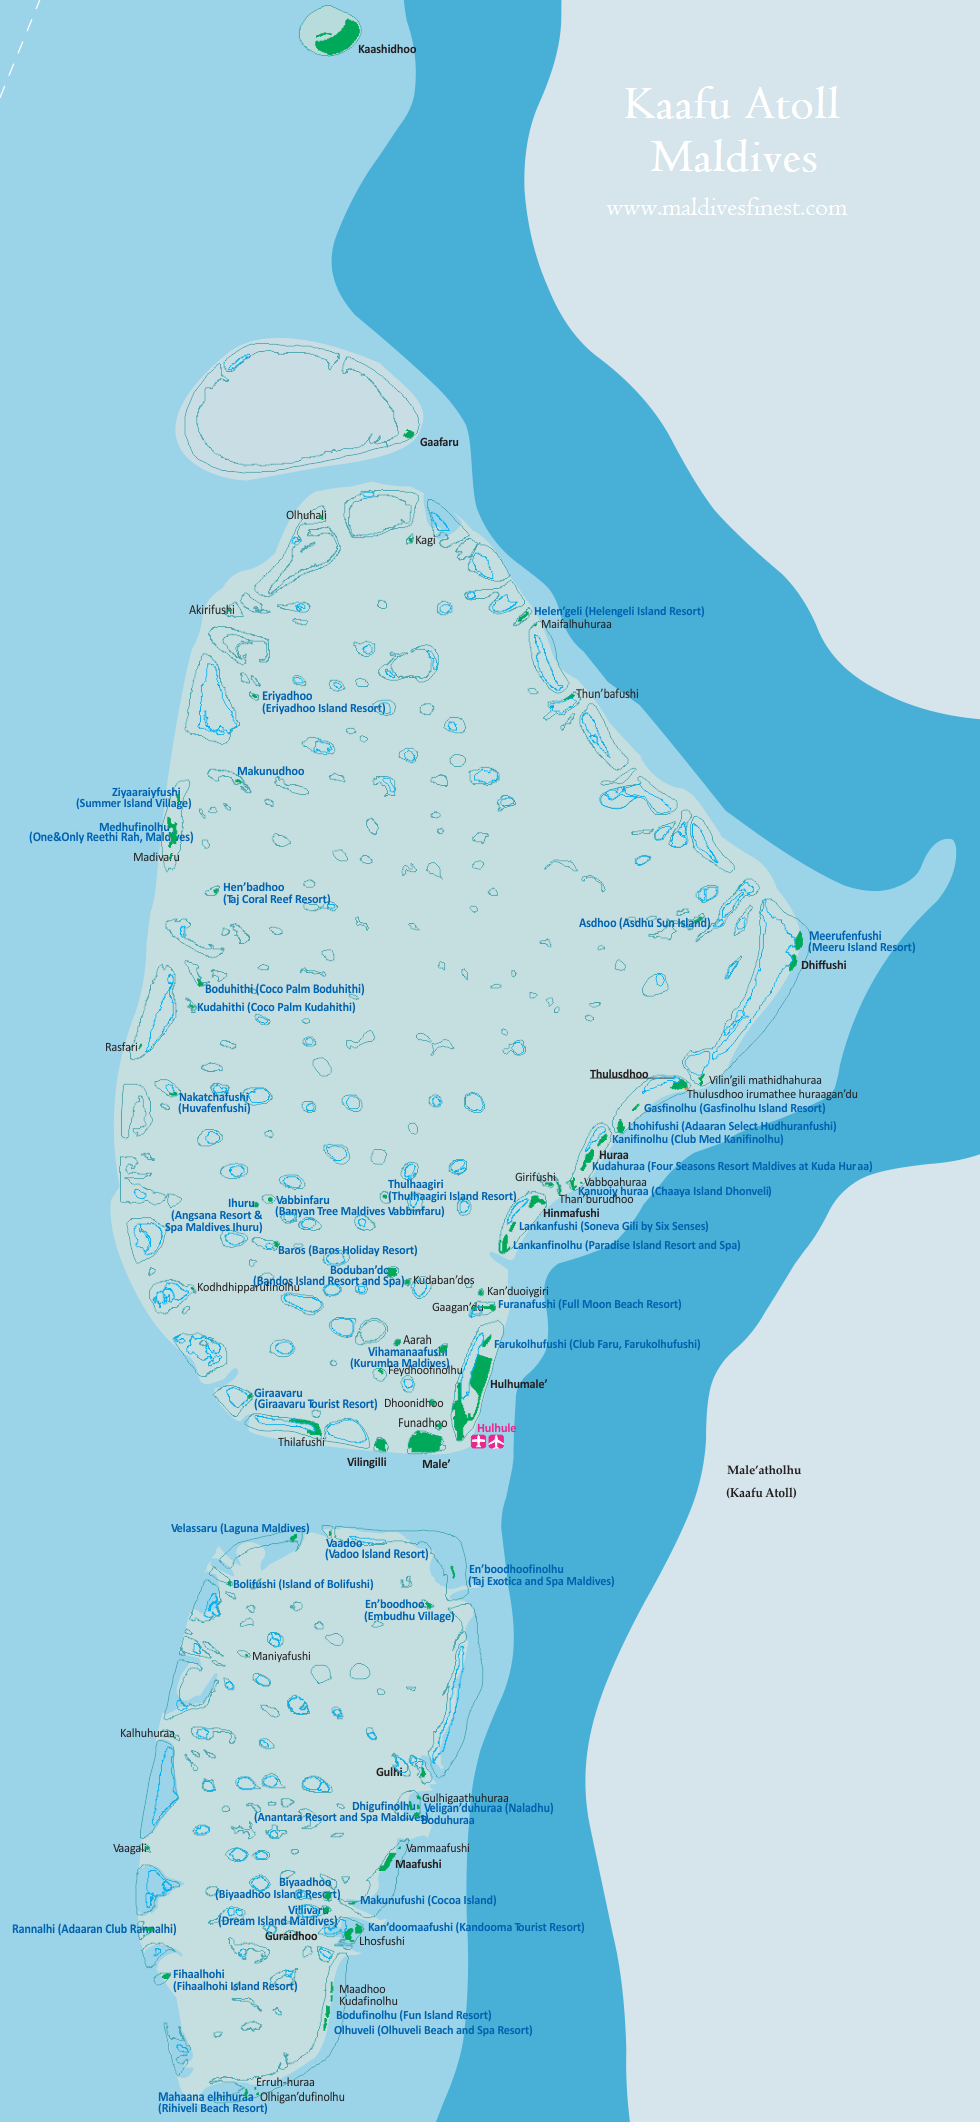 Maldives map shows where is Maldives located Maldives Map Org